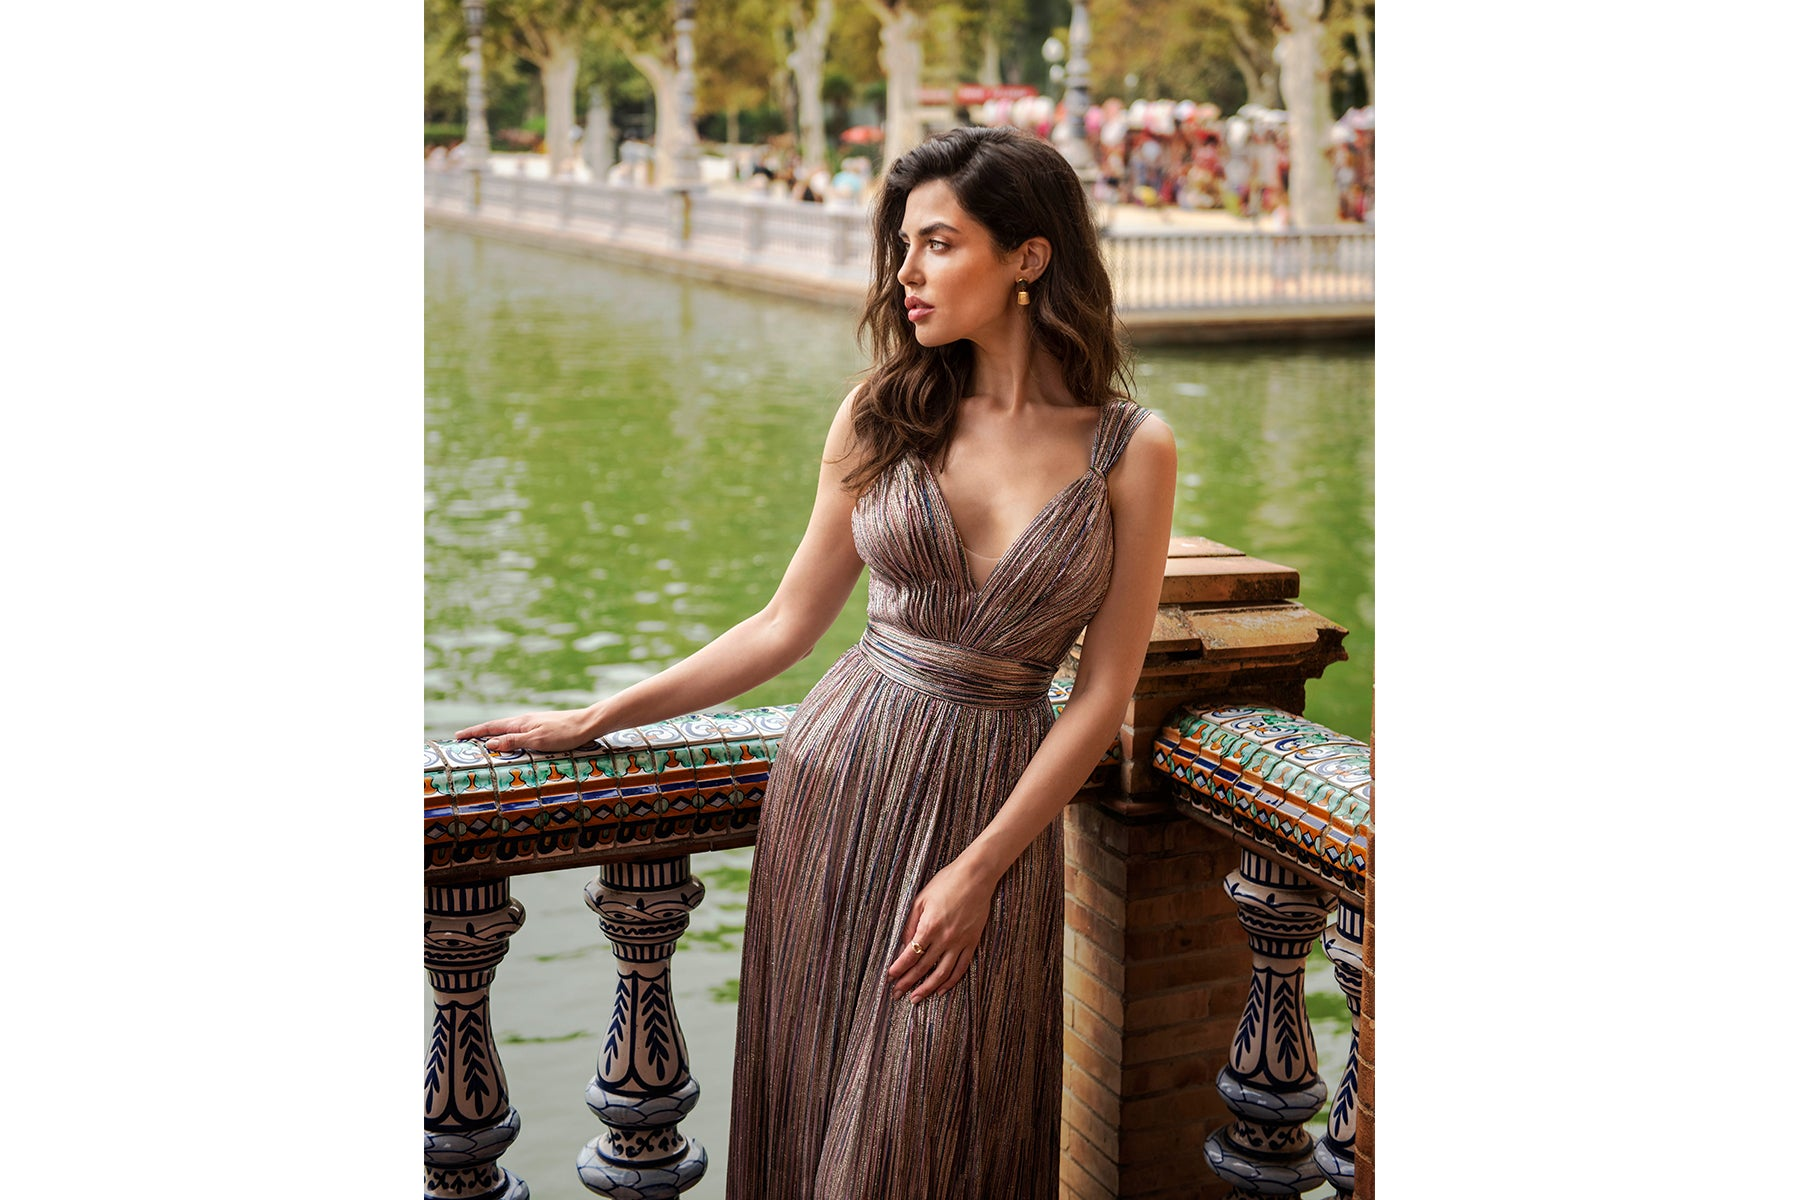 The AW19 Occasionwear Collection